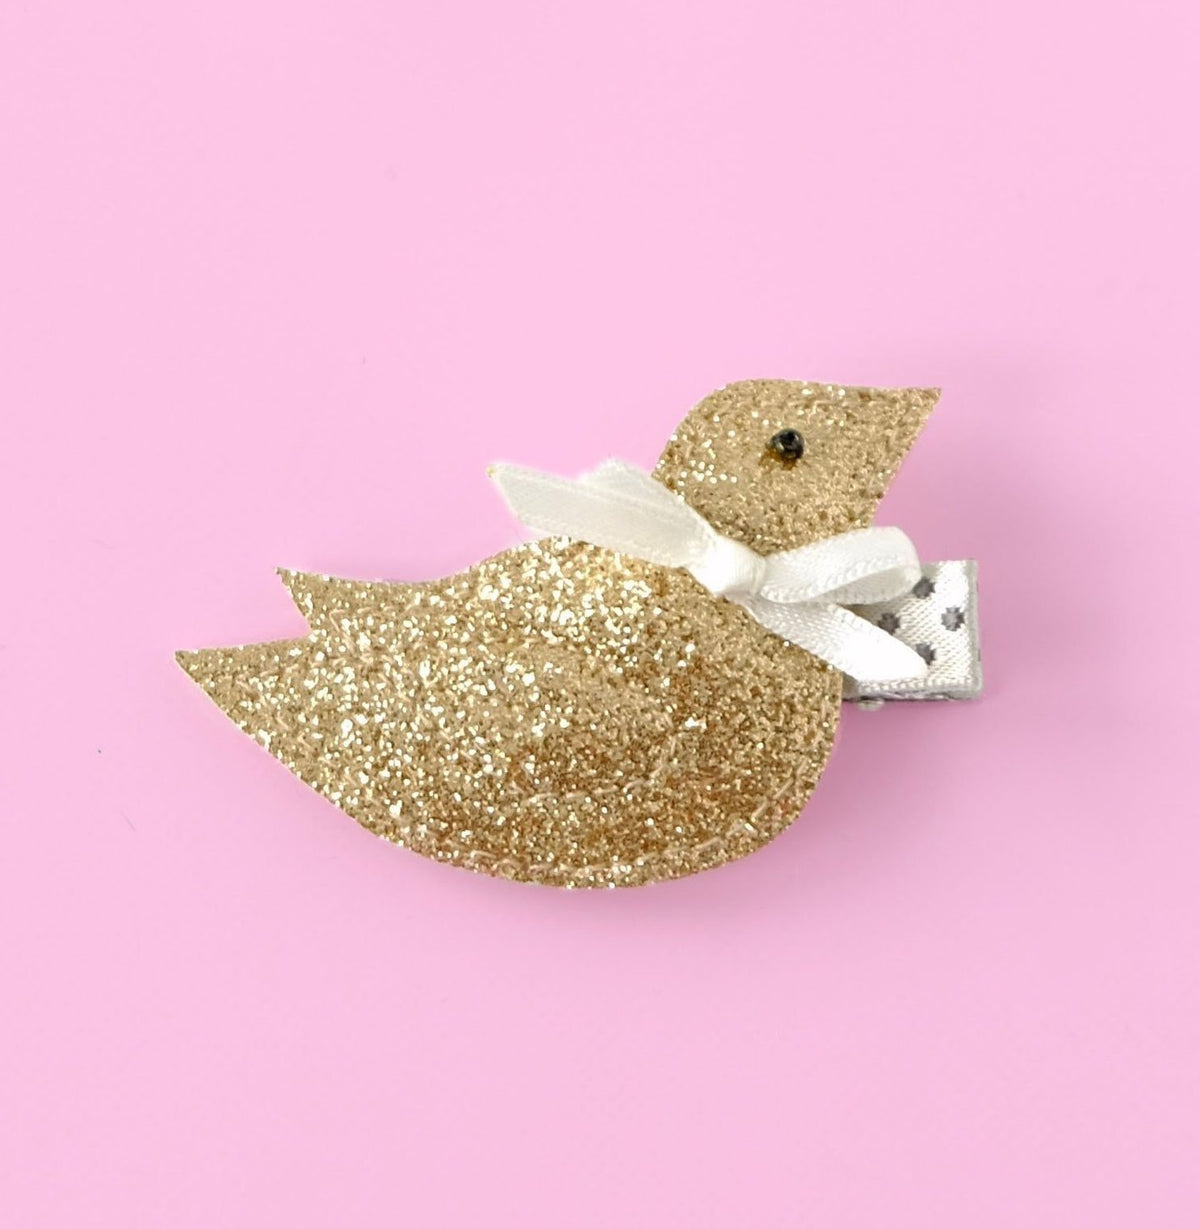 small bird hair clip in gold on pink background